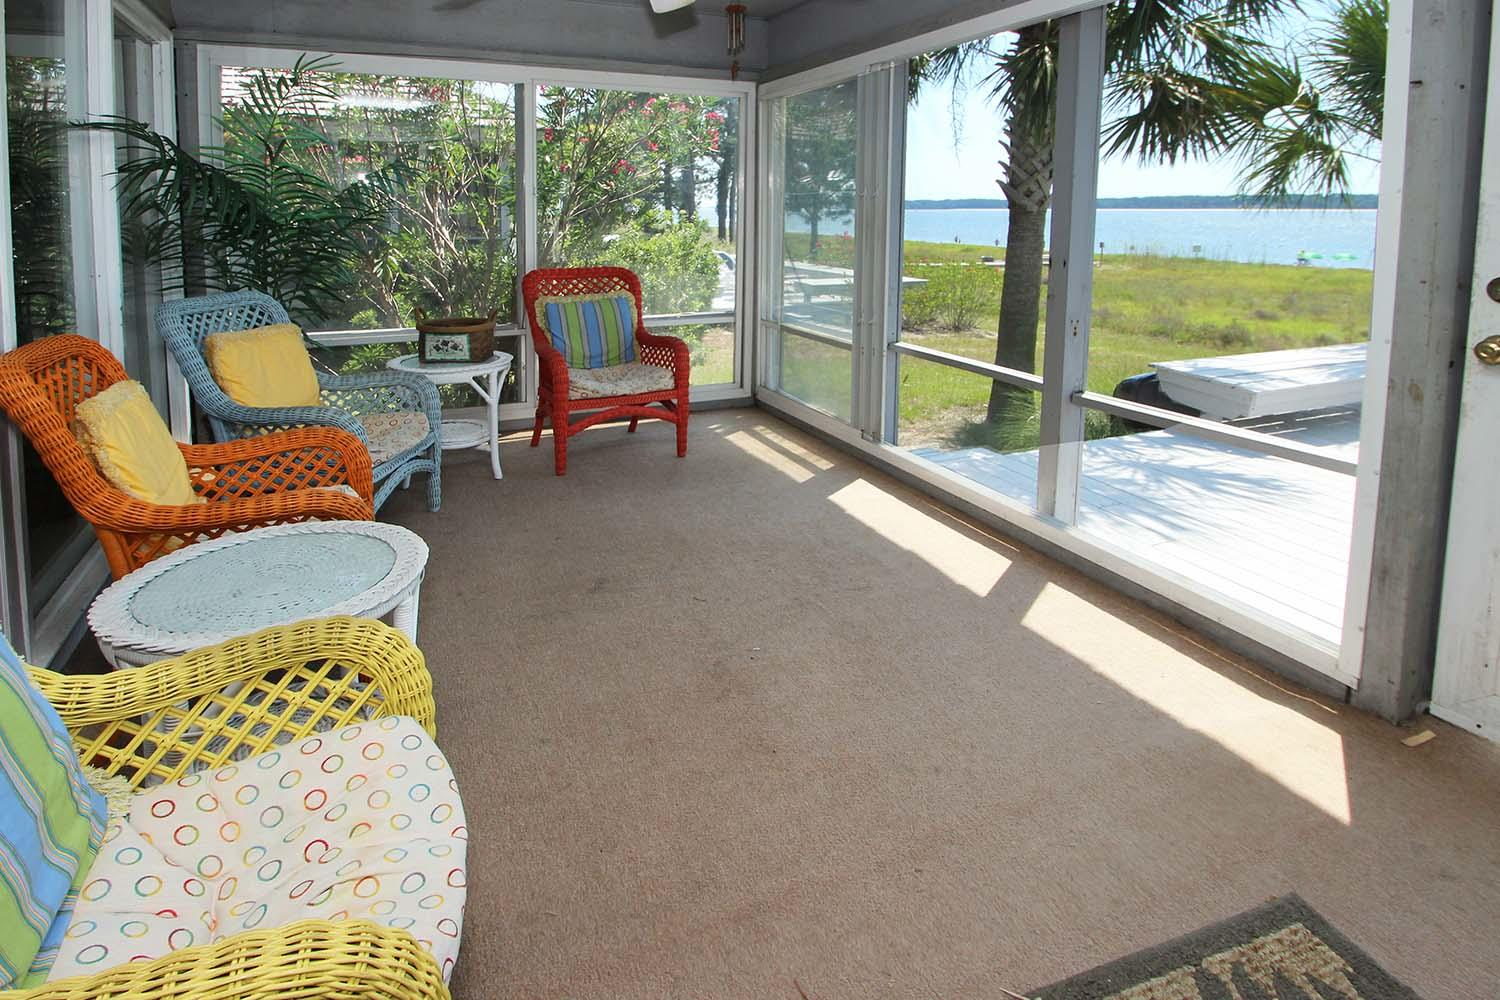 Screened porch off living area